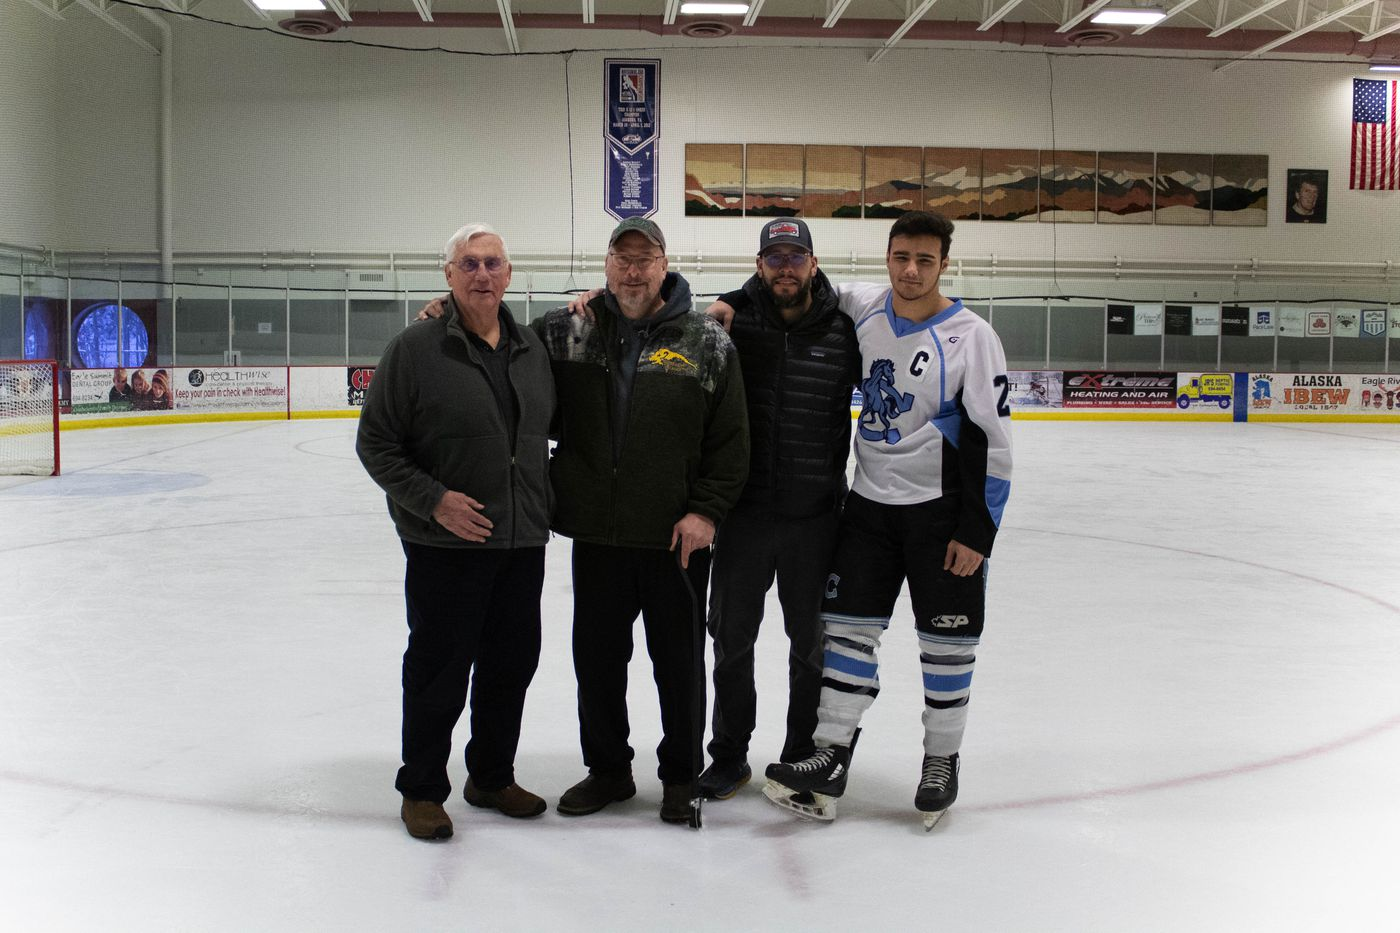 Three generations of the Huffer family who have all been involved in ASAA pose at the ice rink, including Tom Sr., brothers Tom Jr. and John Paul and John Paul's son, Tyler. (ASAA)